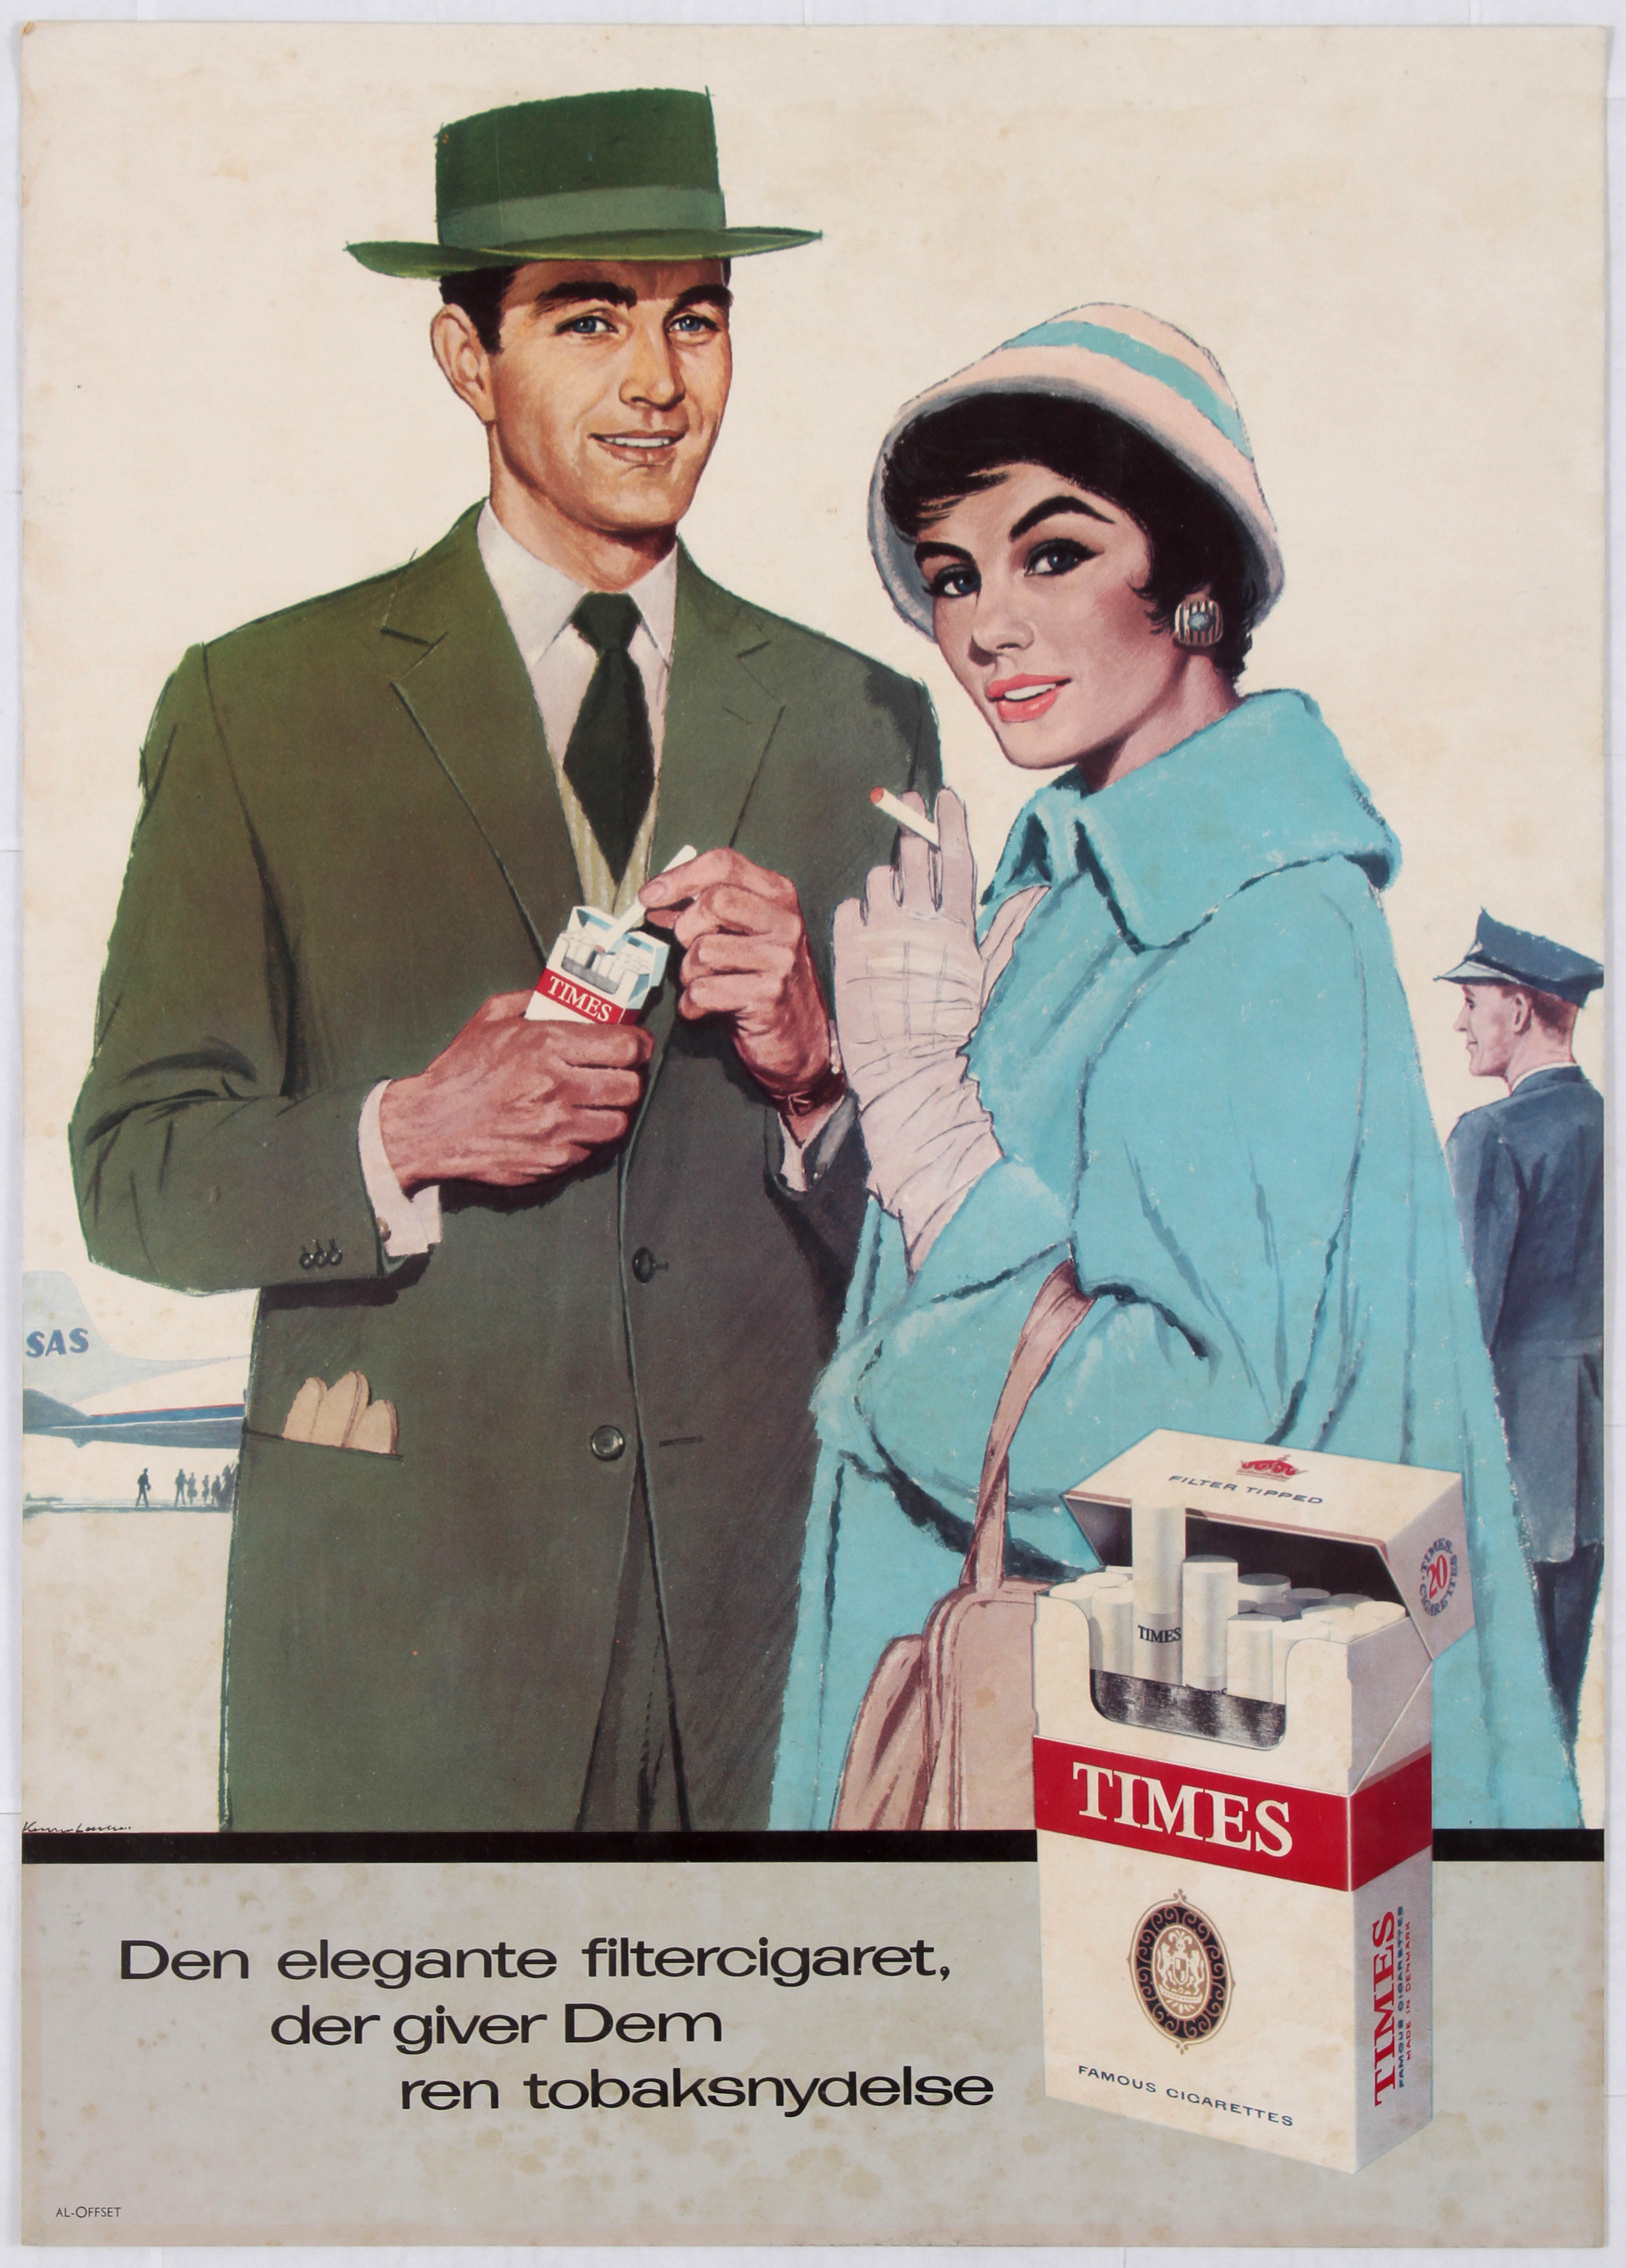 Lot 1501 - Advertising Poster Times Cigarettes Advertising